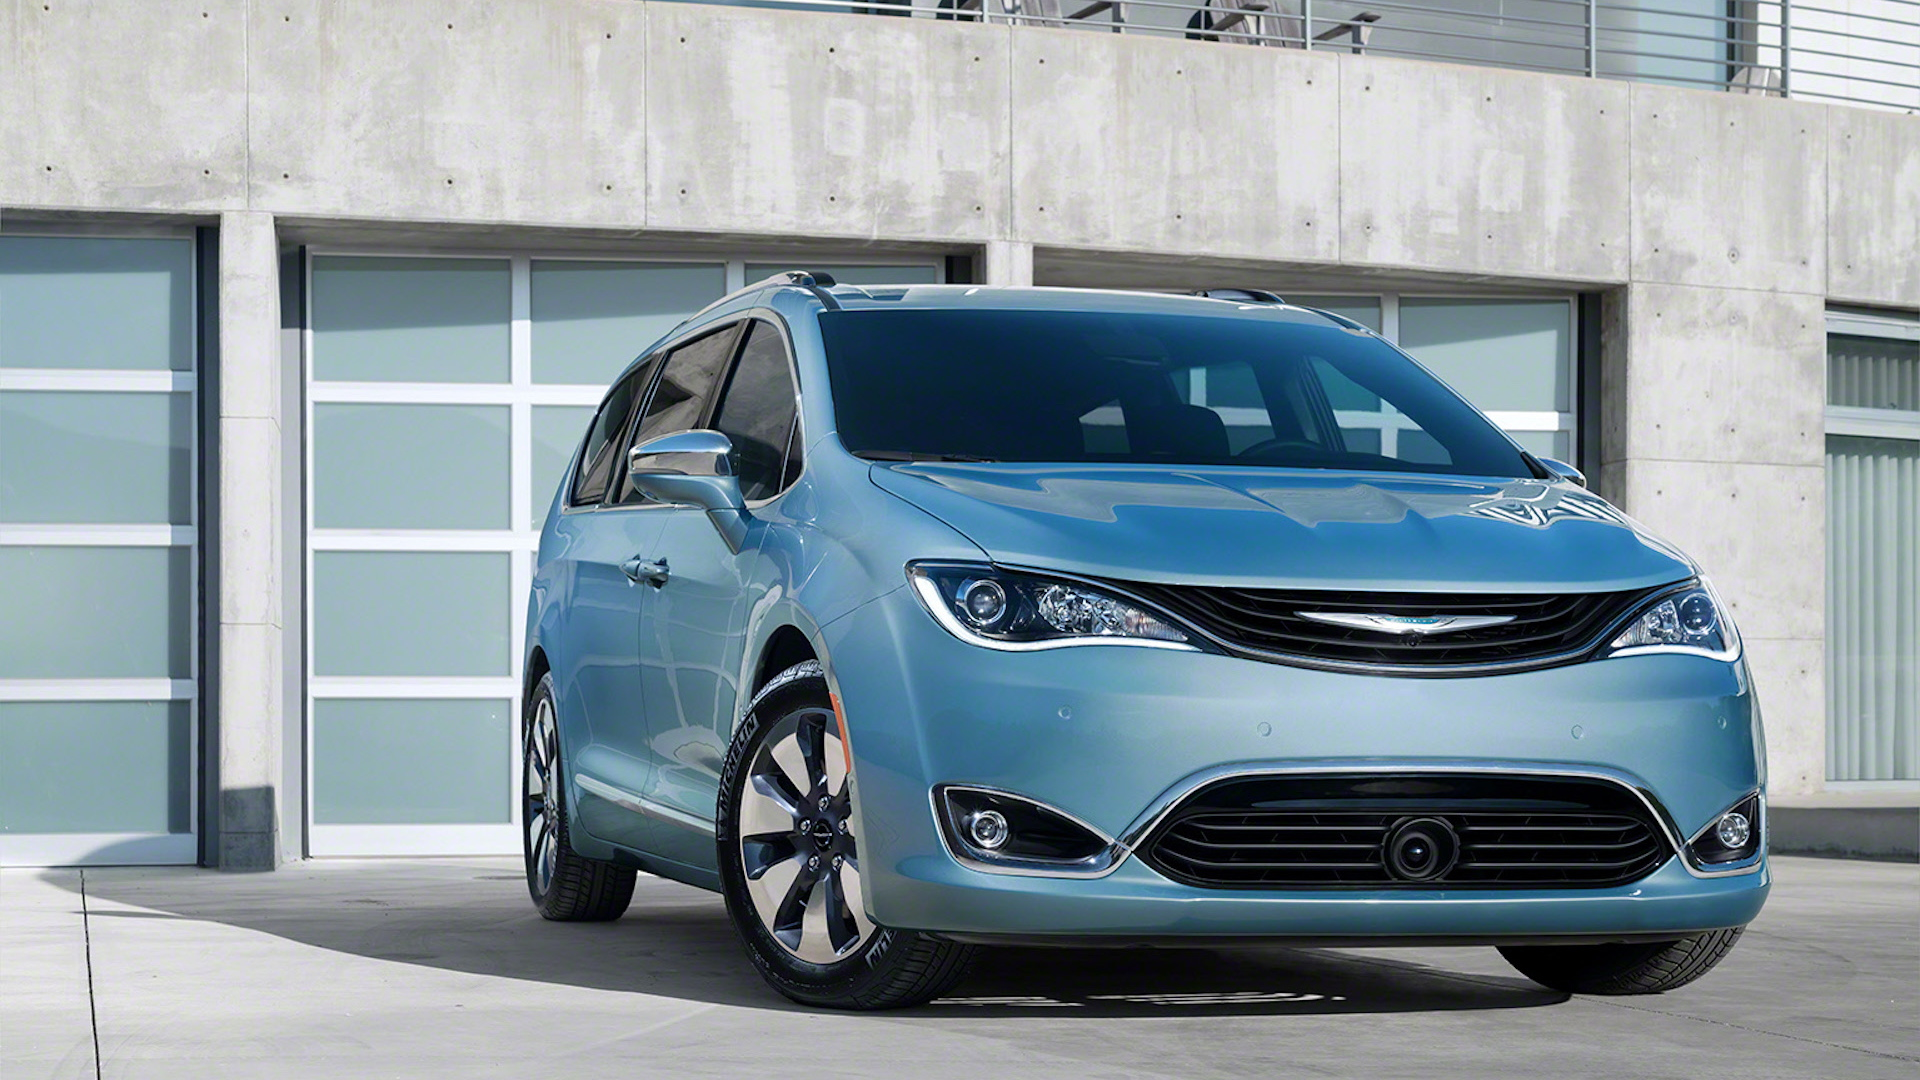 2017 Chrysler Pacifica Hybrid Plug In Minivan Offers 30